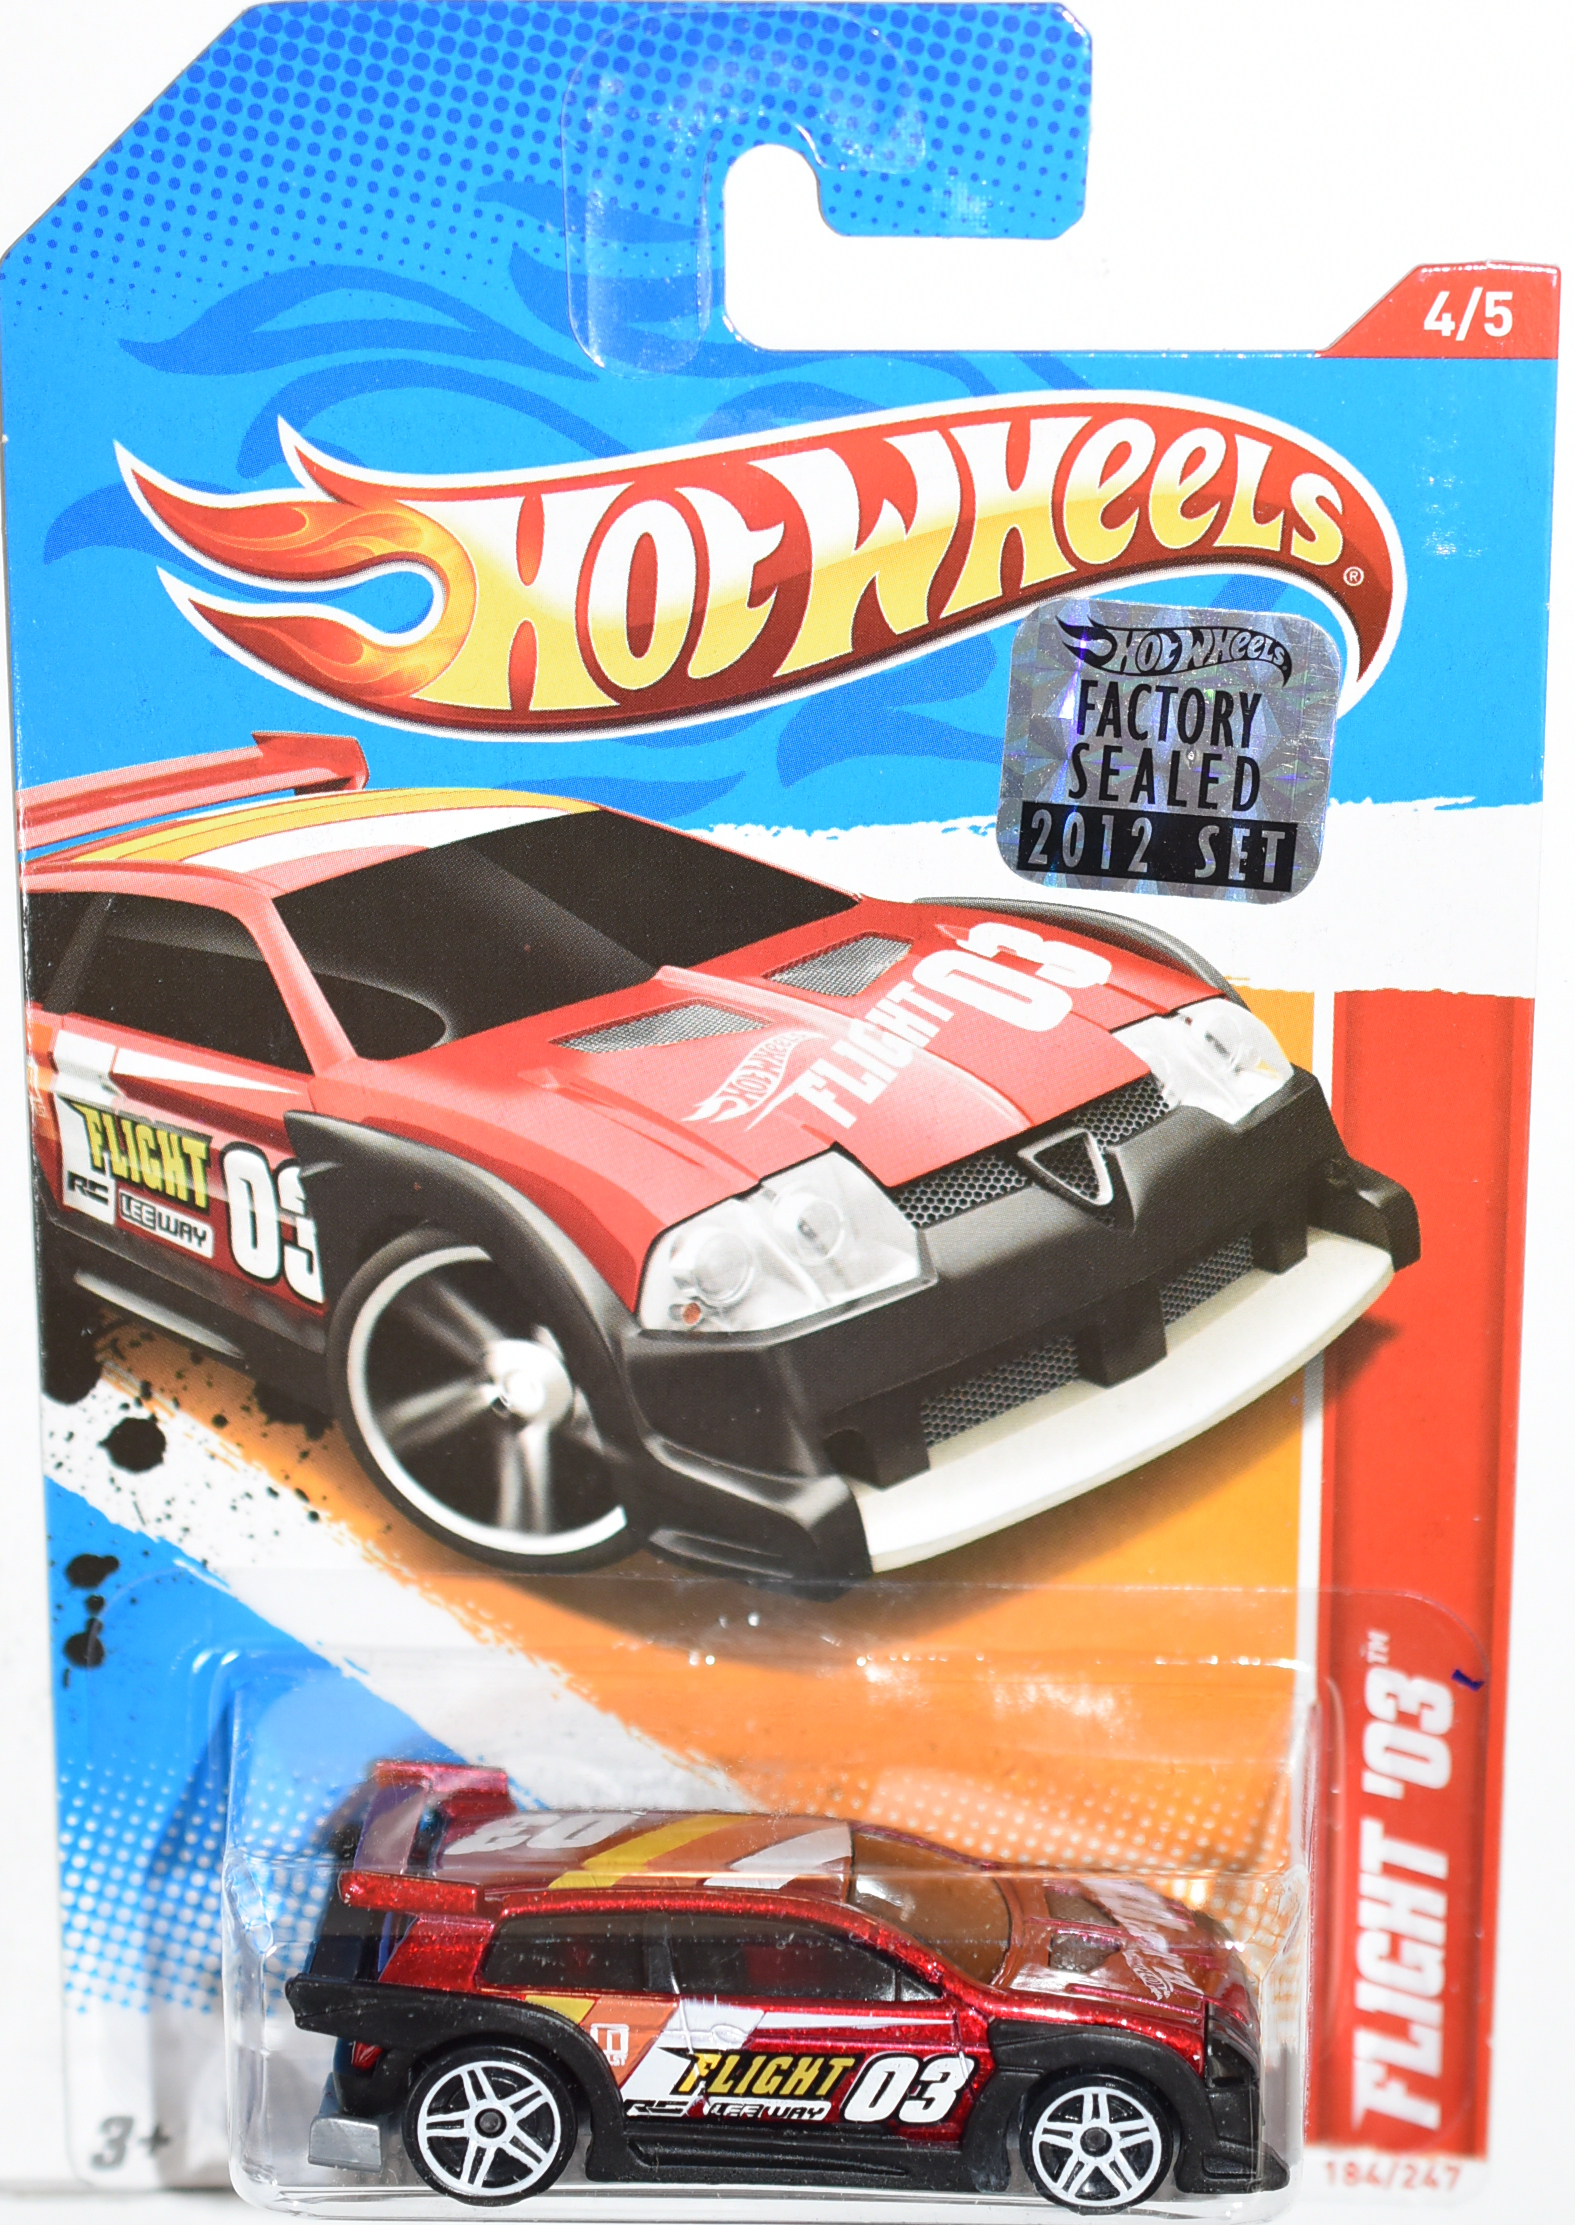 HOT WHEELS 2012 FLIGHT '03 FACTORY SEALED